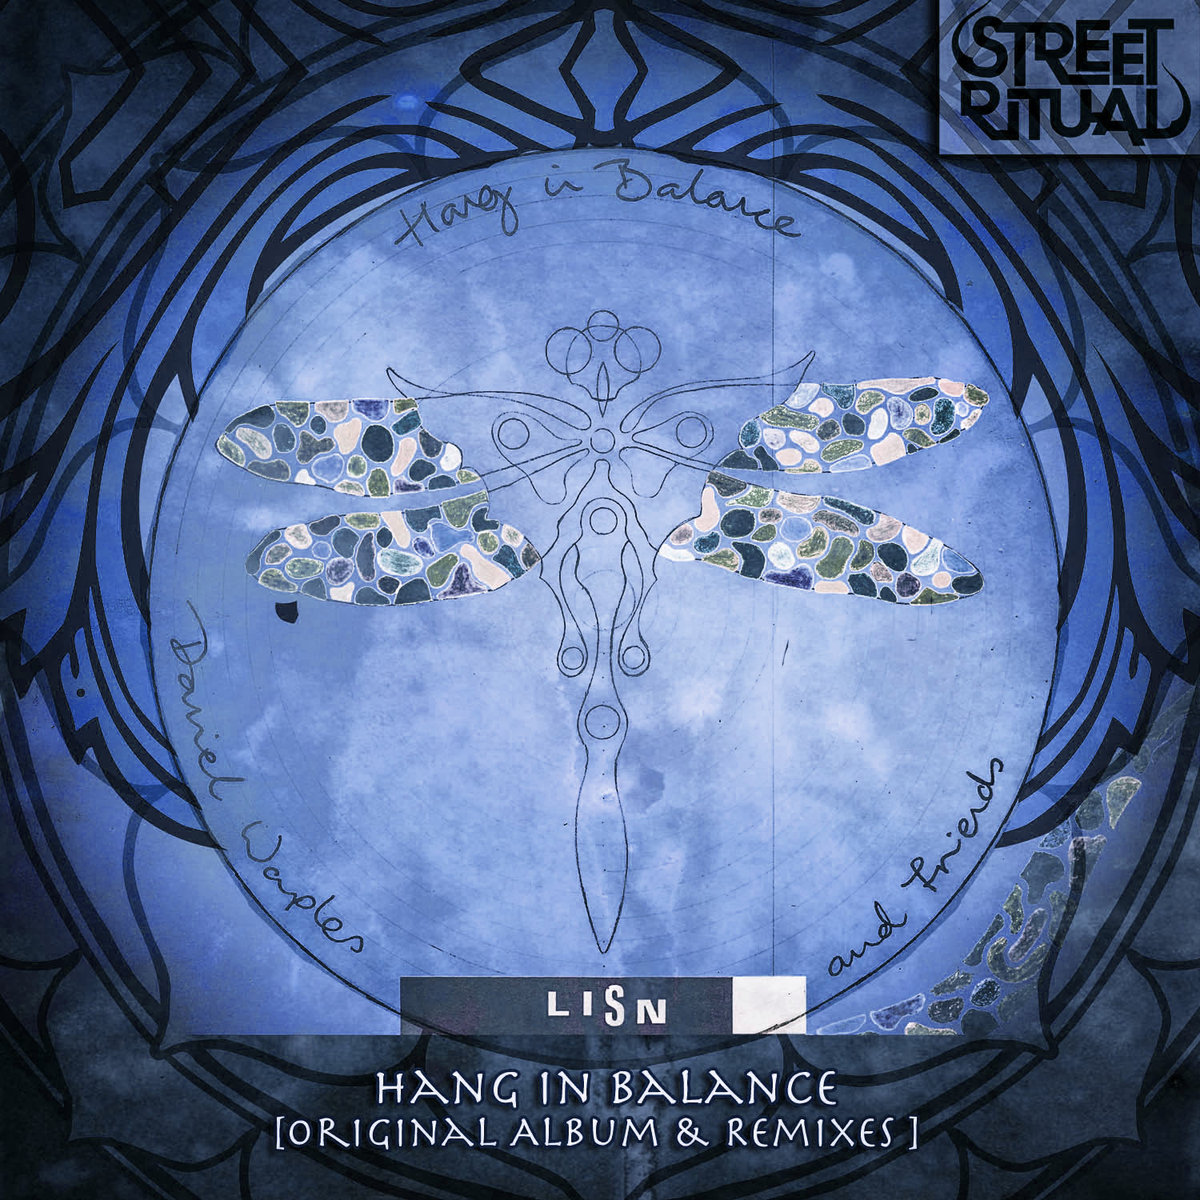 Hang in Balance - Hang Out Back @ 'Lisn (Remixes & Originals)' album (bass, daniel waples)